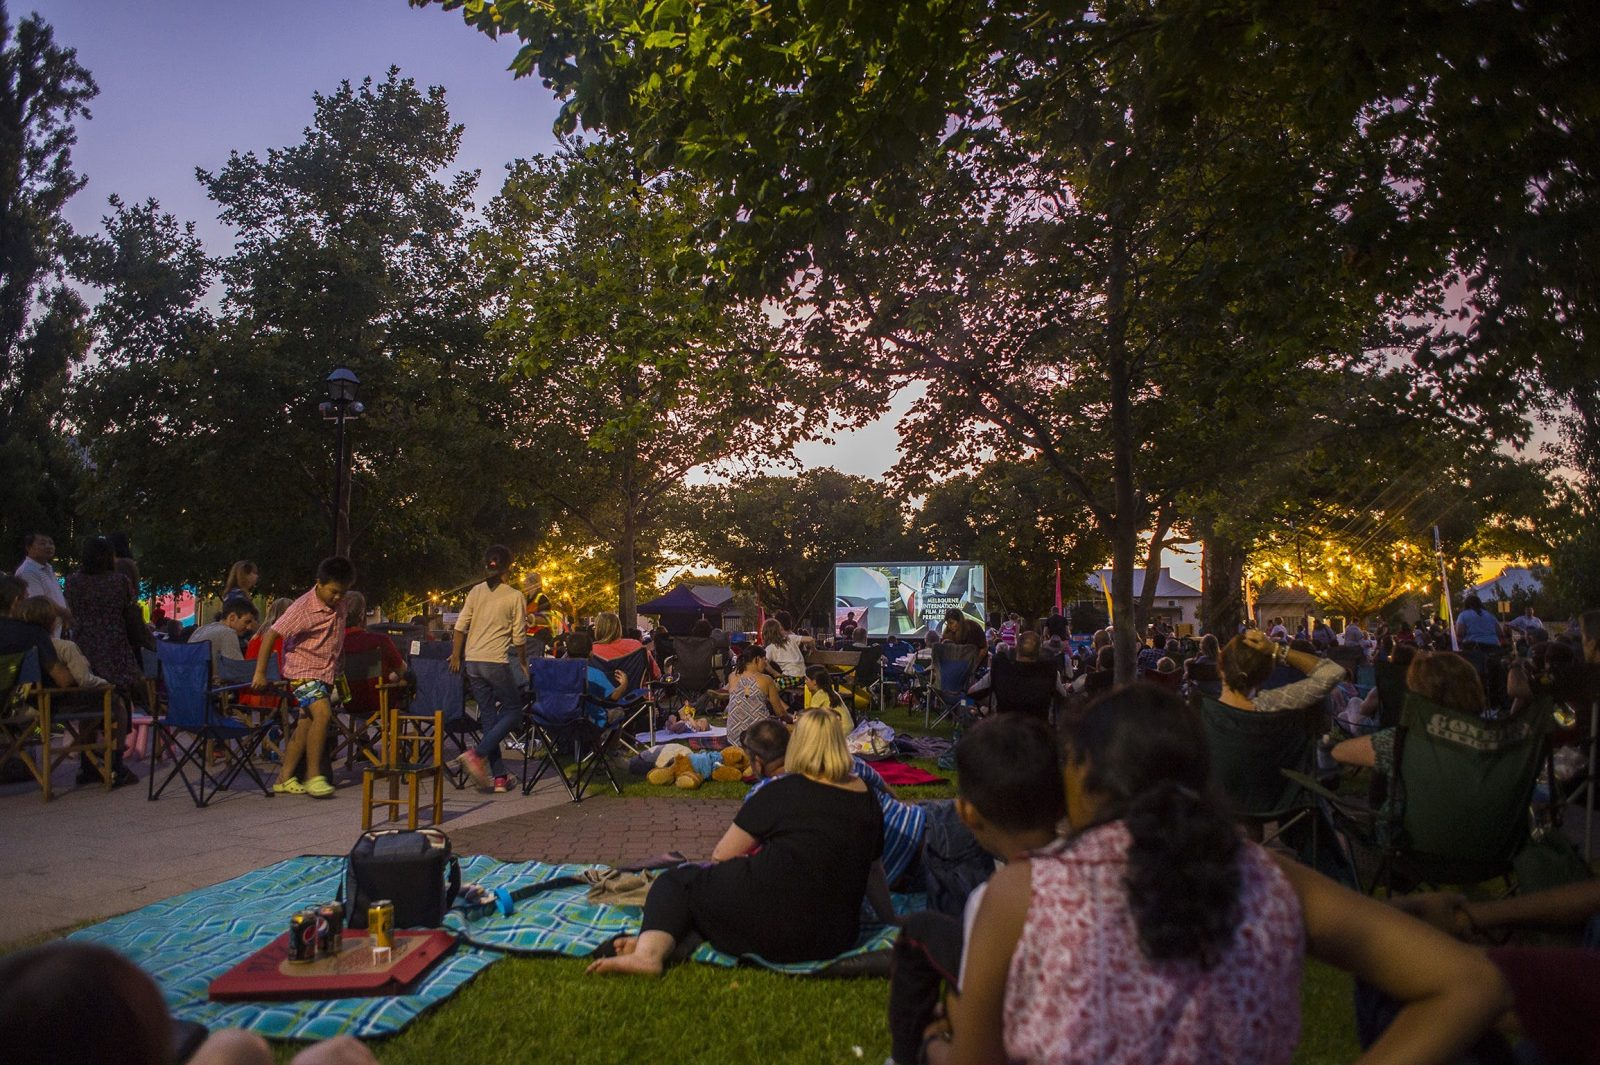 Group of people watching movie in park during the evening.